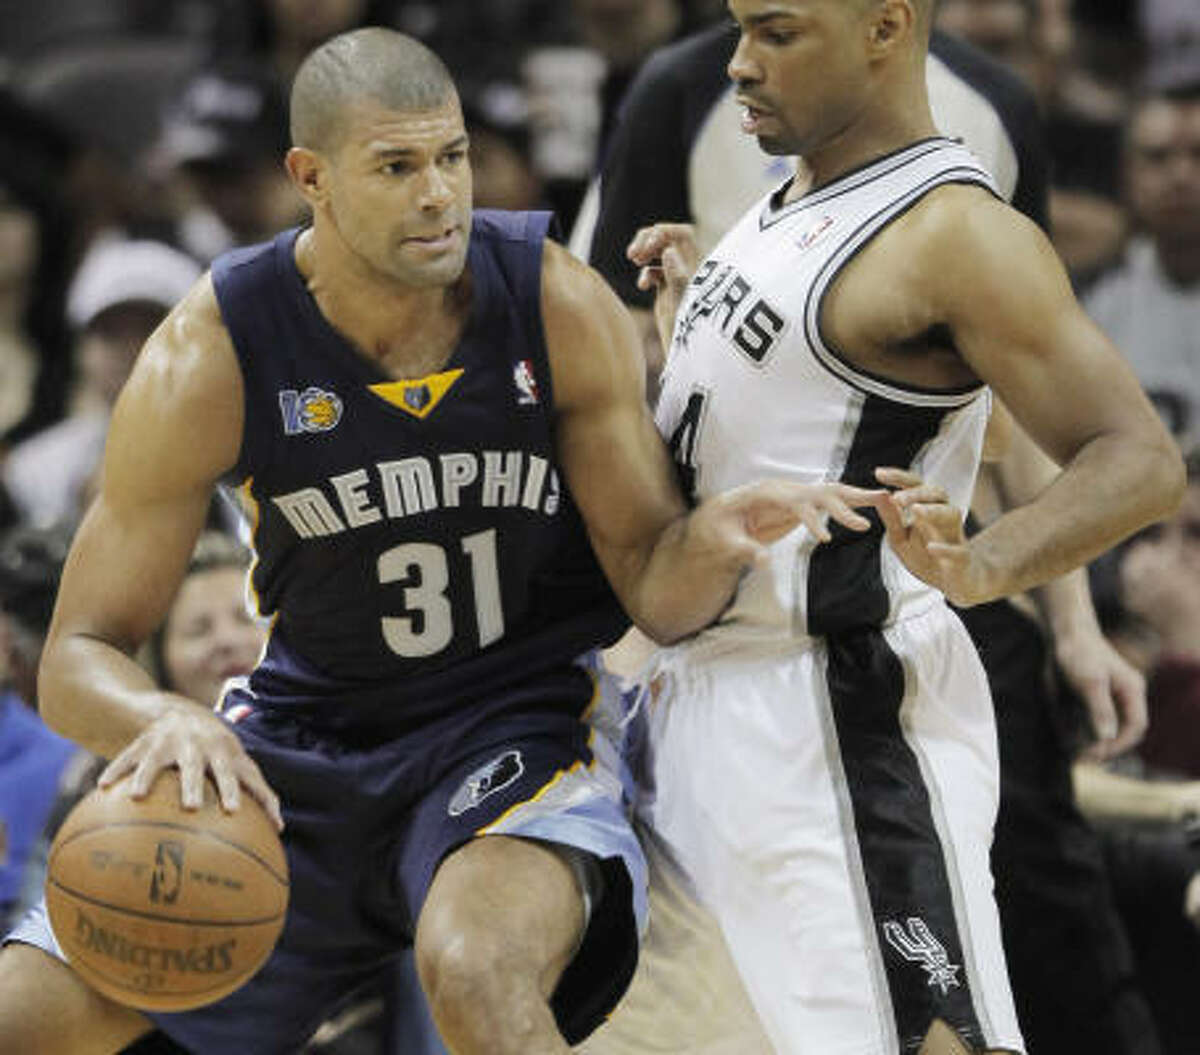 Shane Battier, Grizzlies Battier spent 5 1/2 seasons with the Rockets before he was shipped back to the Grizzlies.